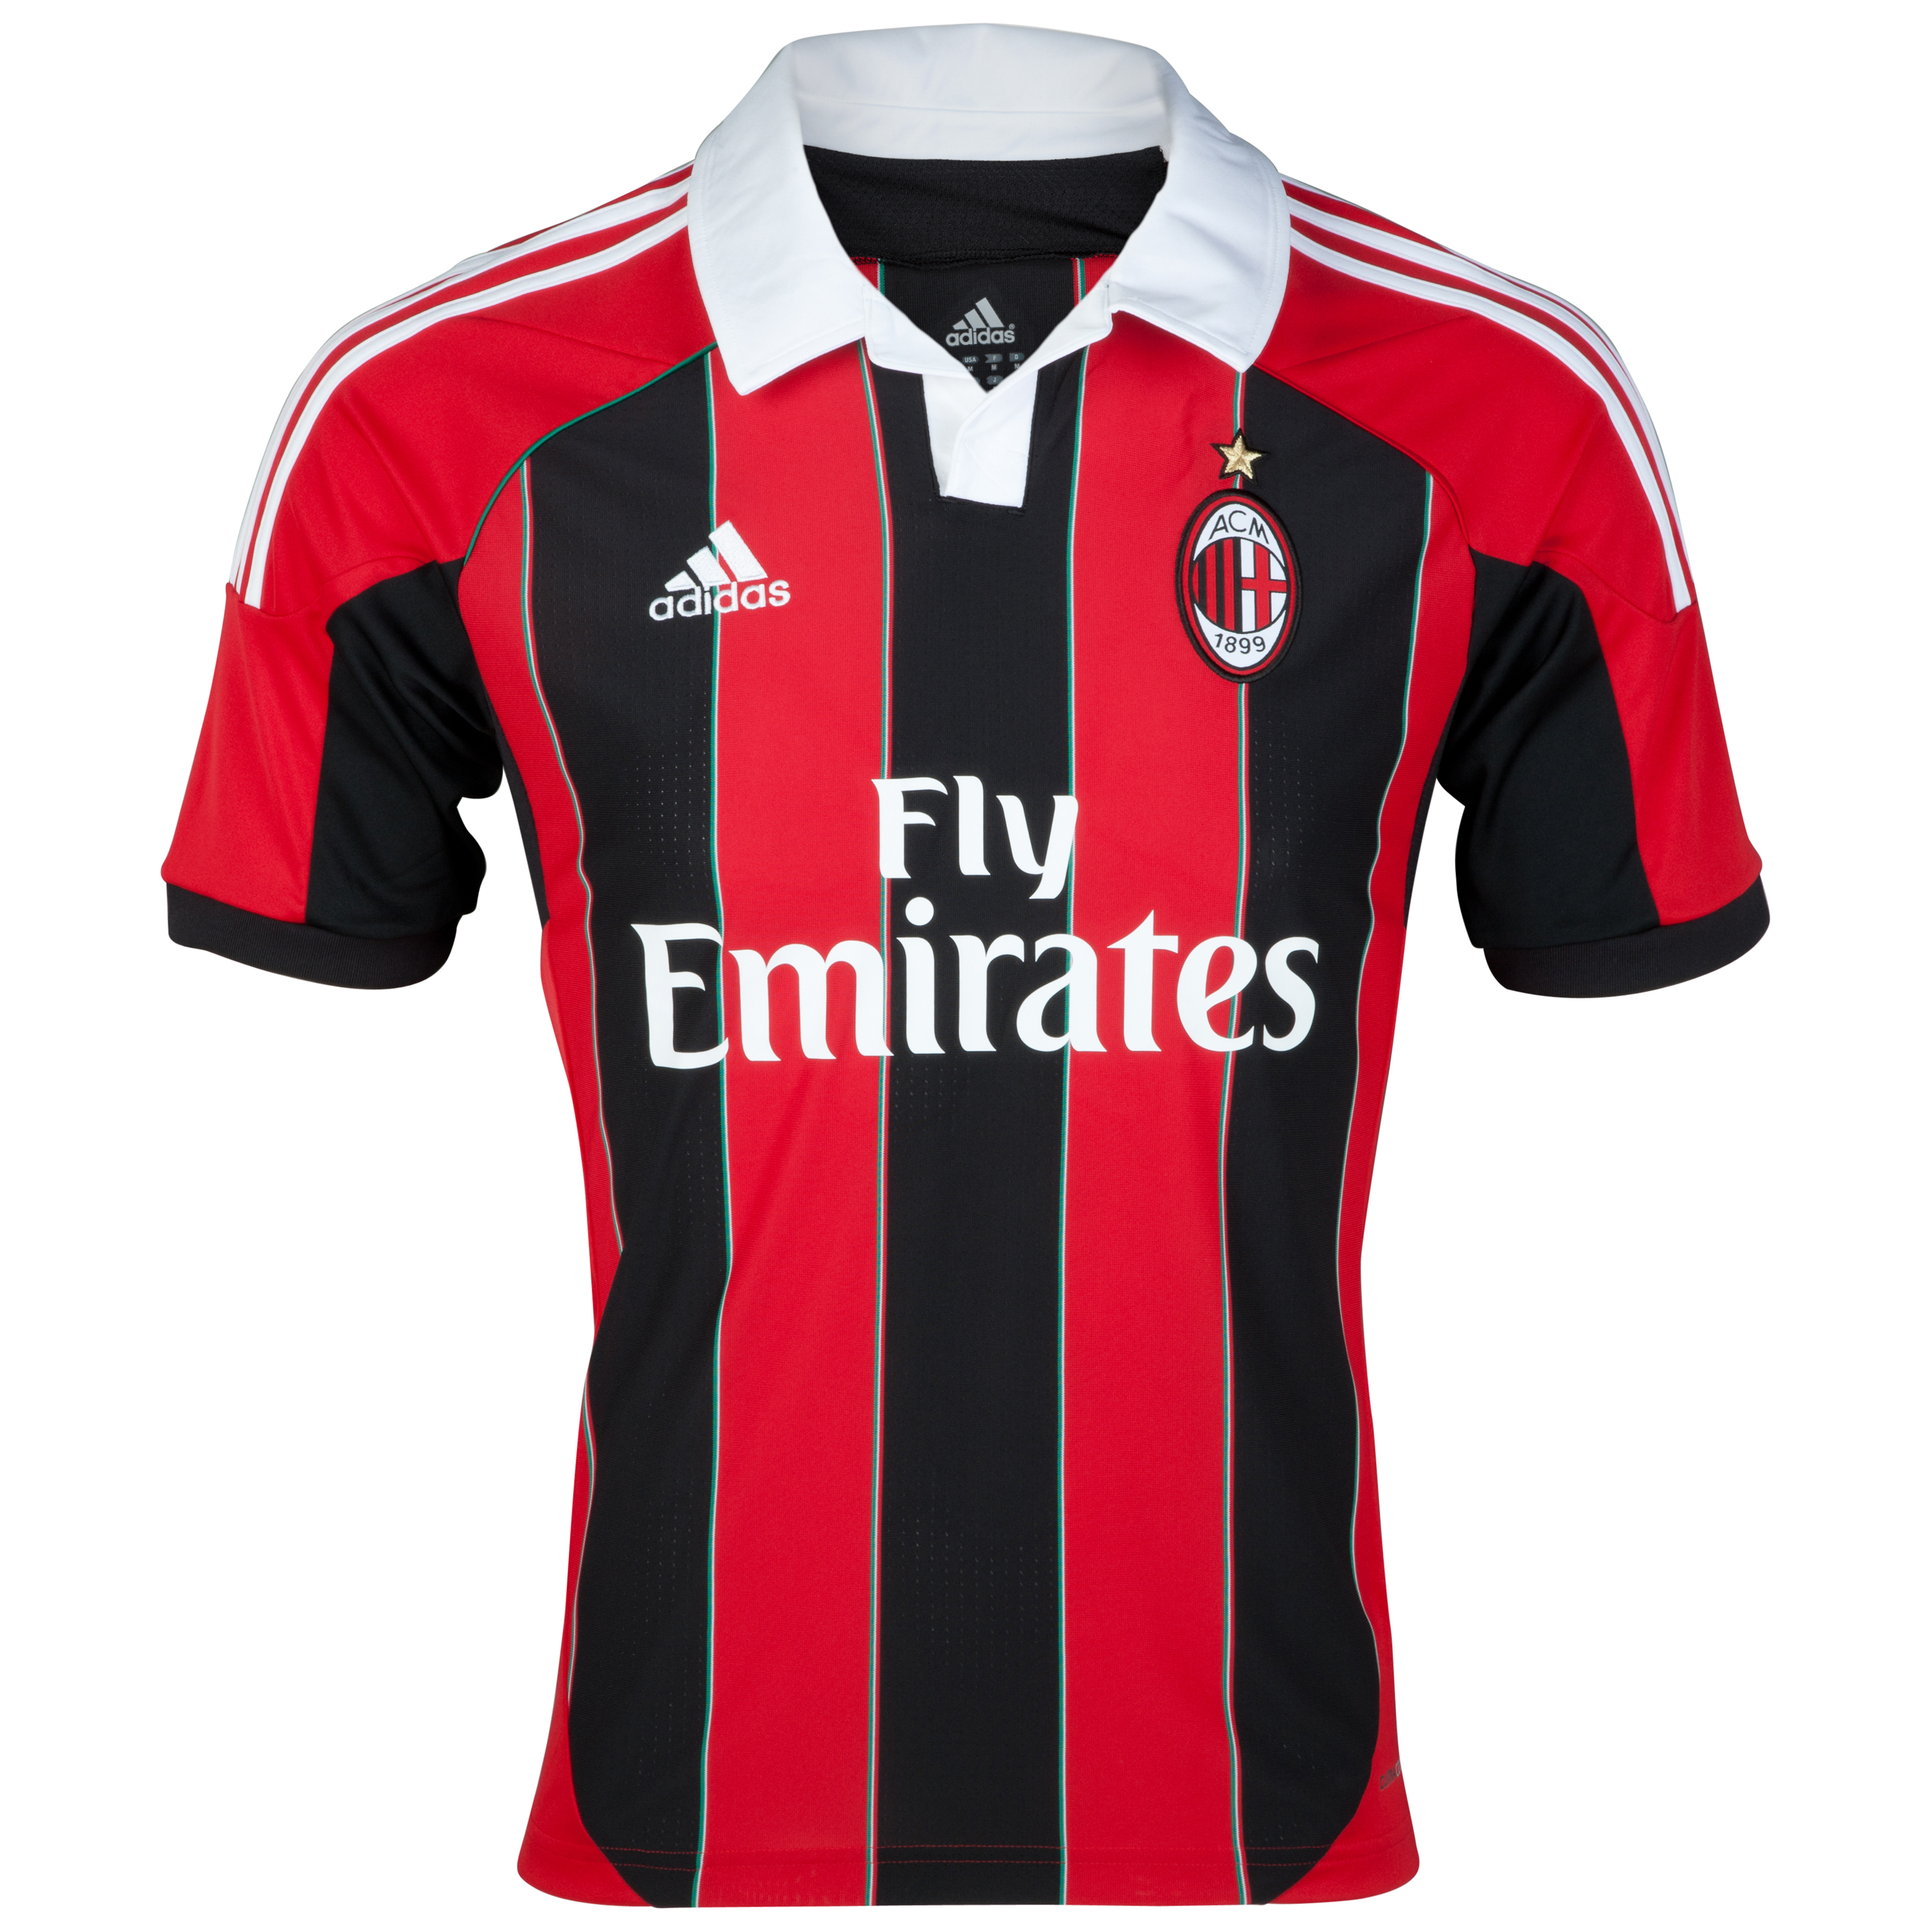 AC Milan Home Shirt 2012/13 Youths